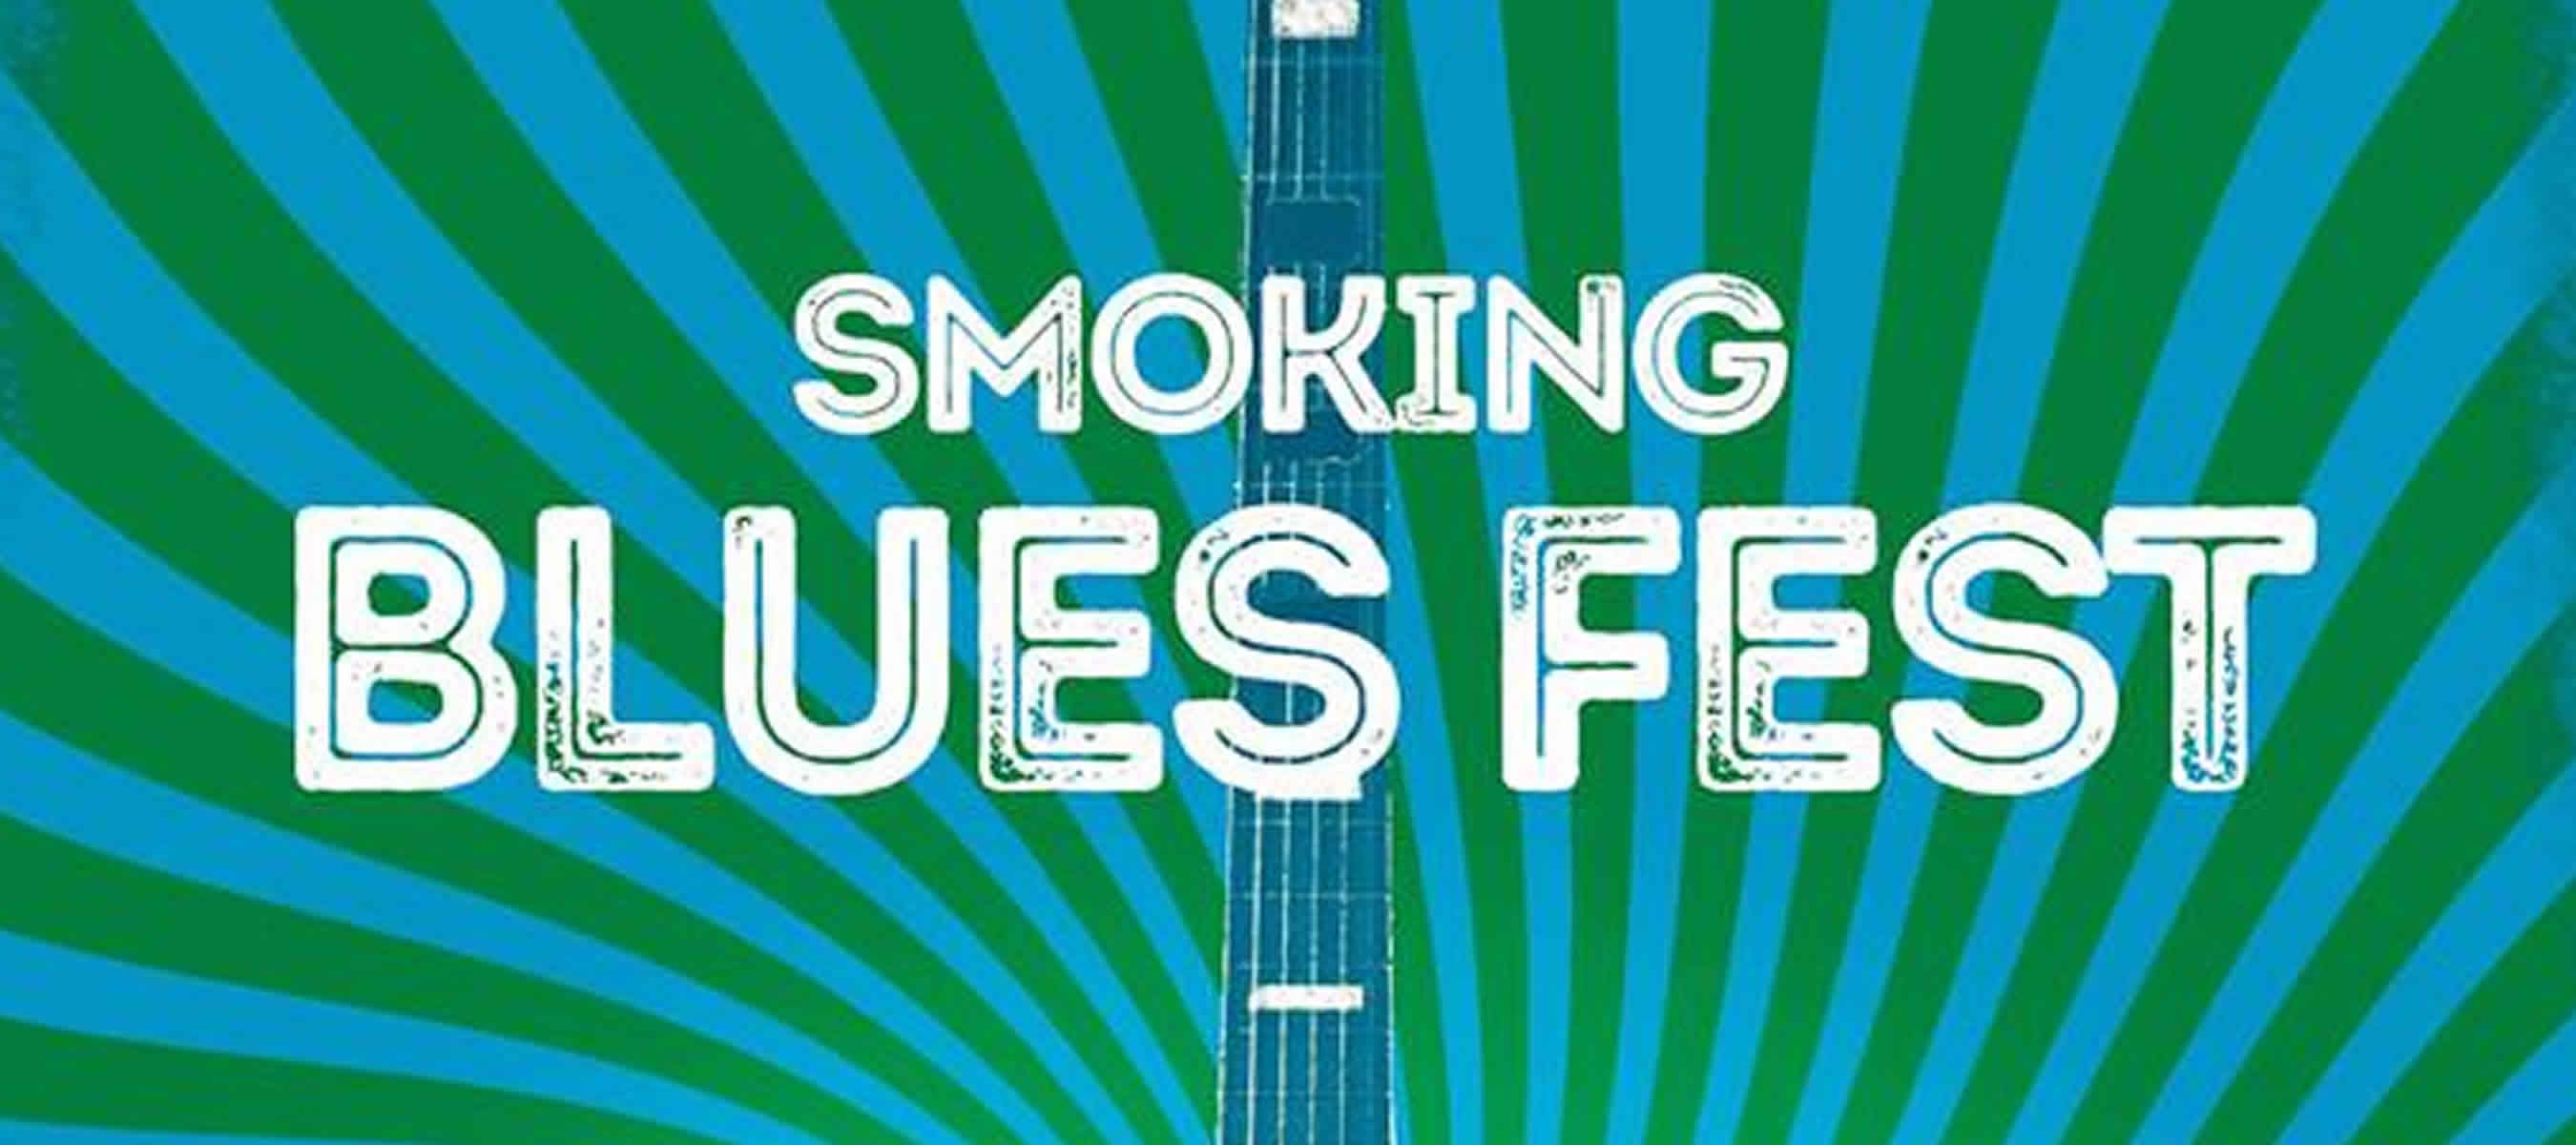 Blues Fest - Smoking Molly